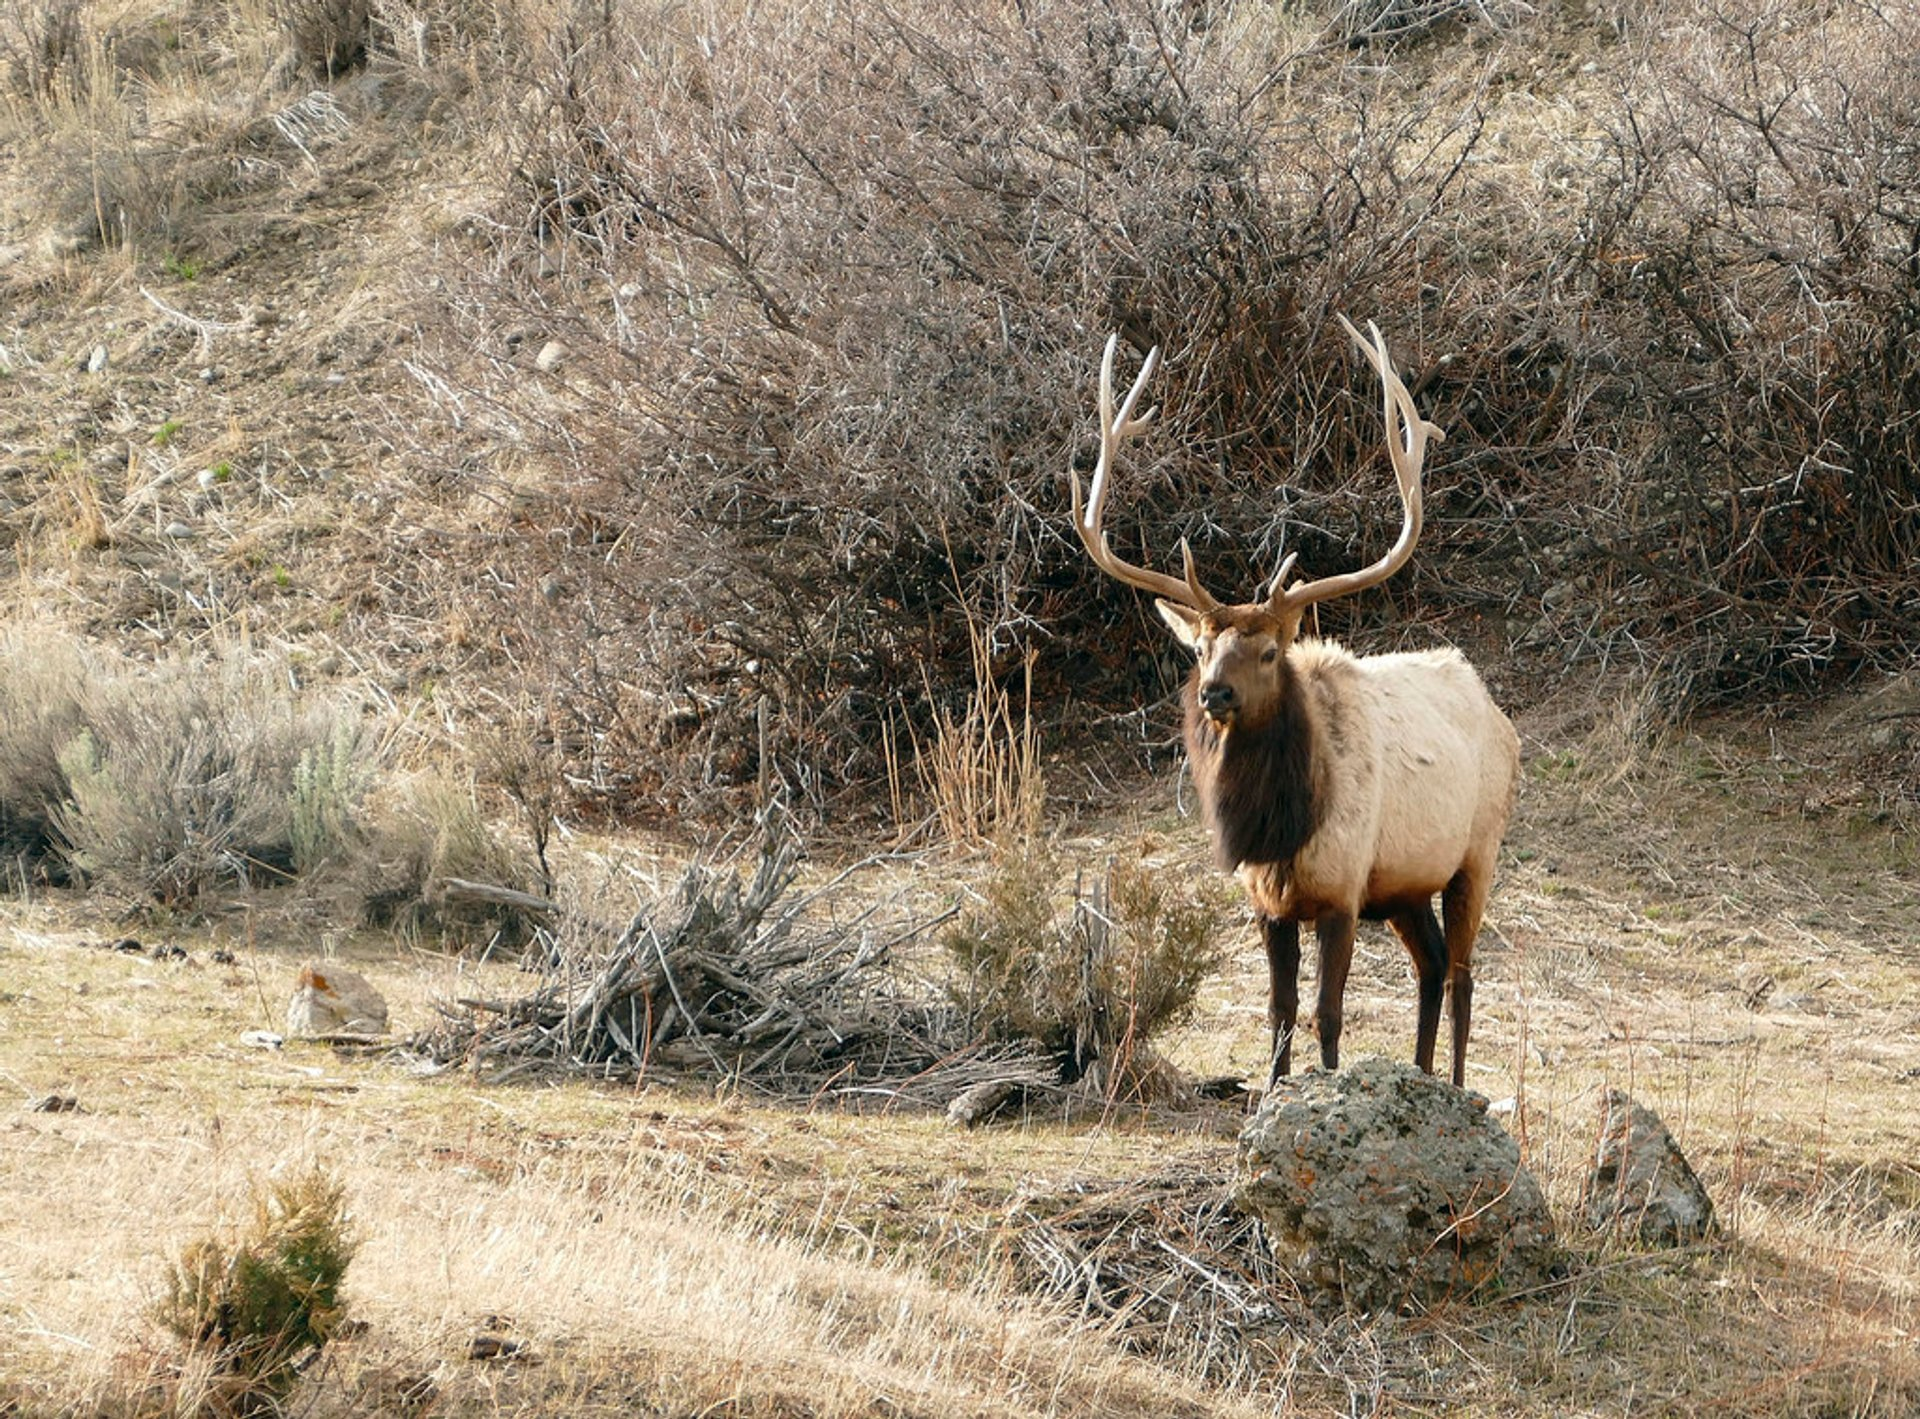 Elks in Yellowstone National Park - Best Season 2019